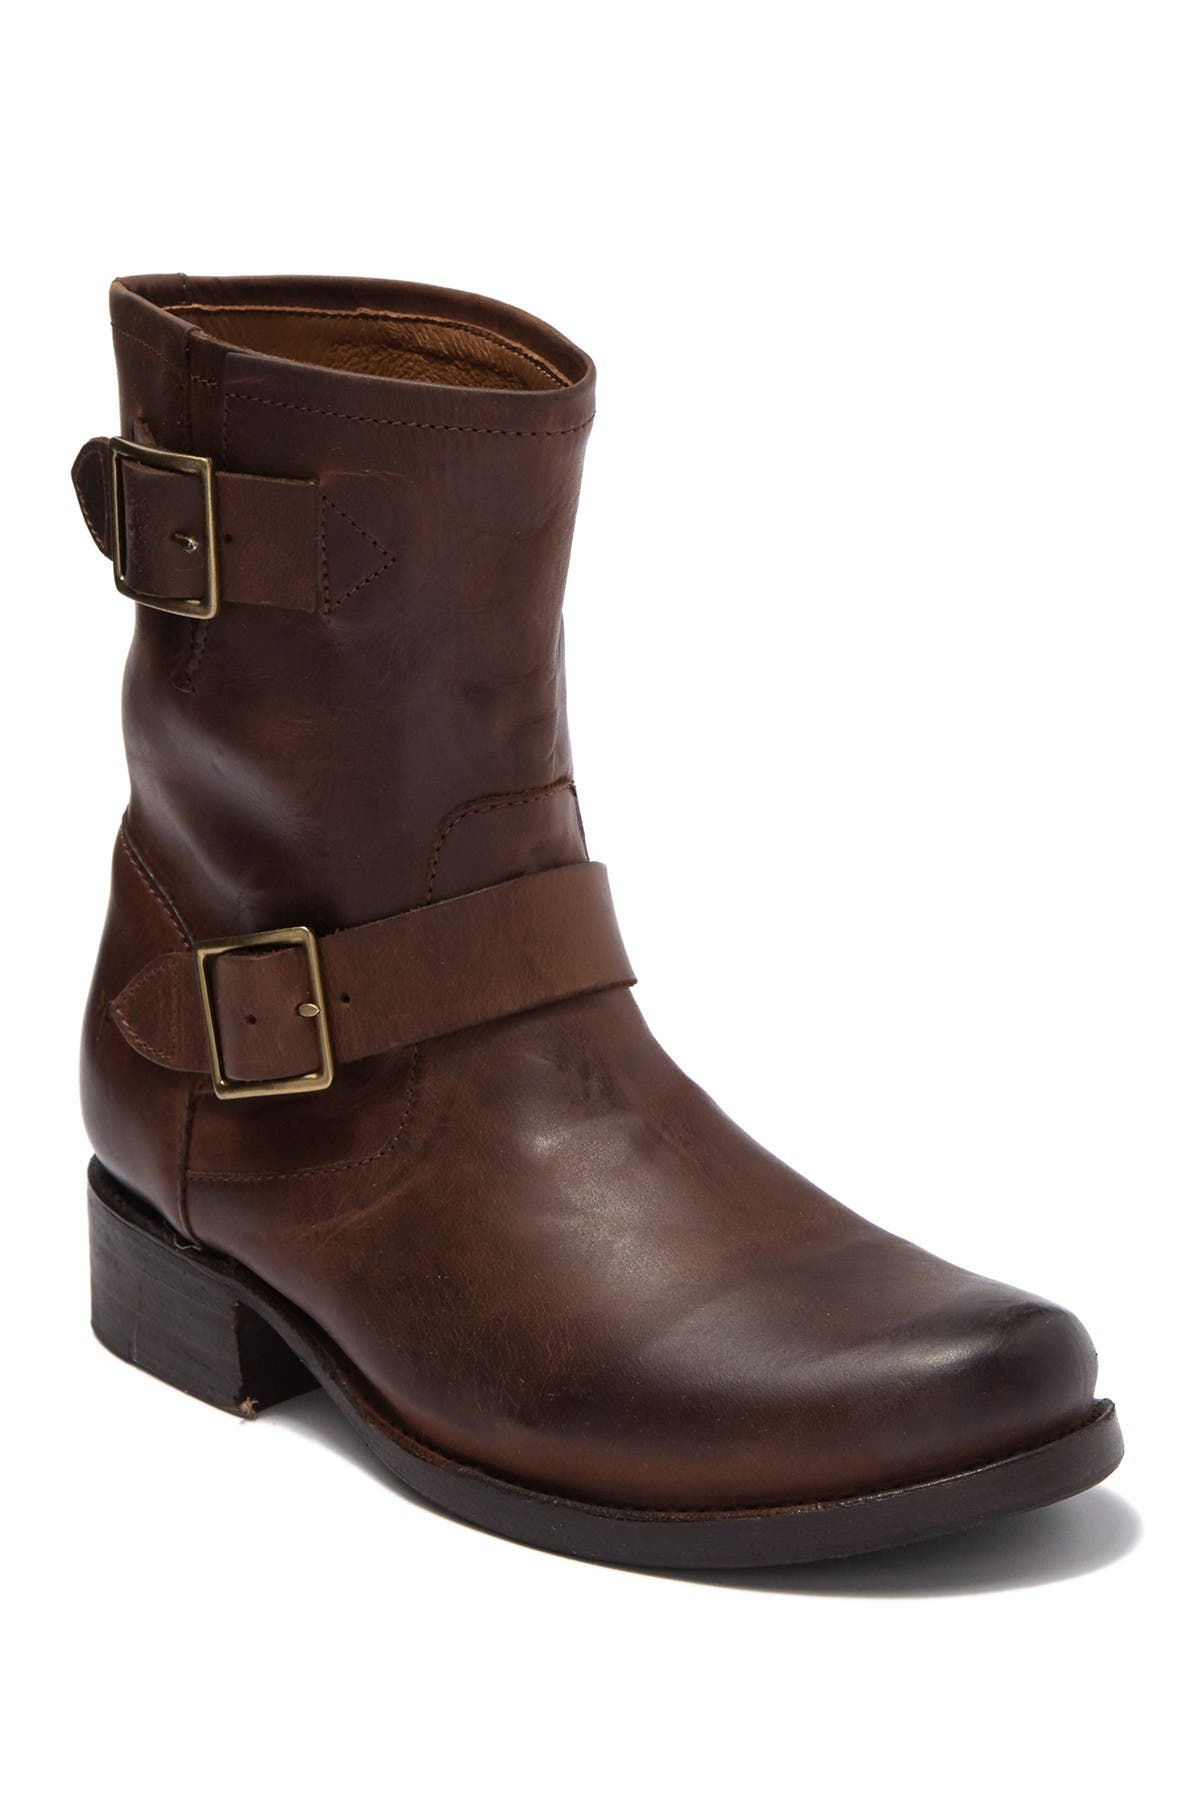 Image of Frye Vicky Engineer Leather Boot